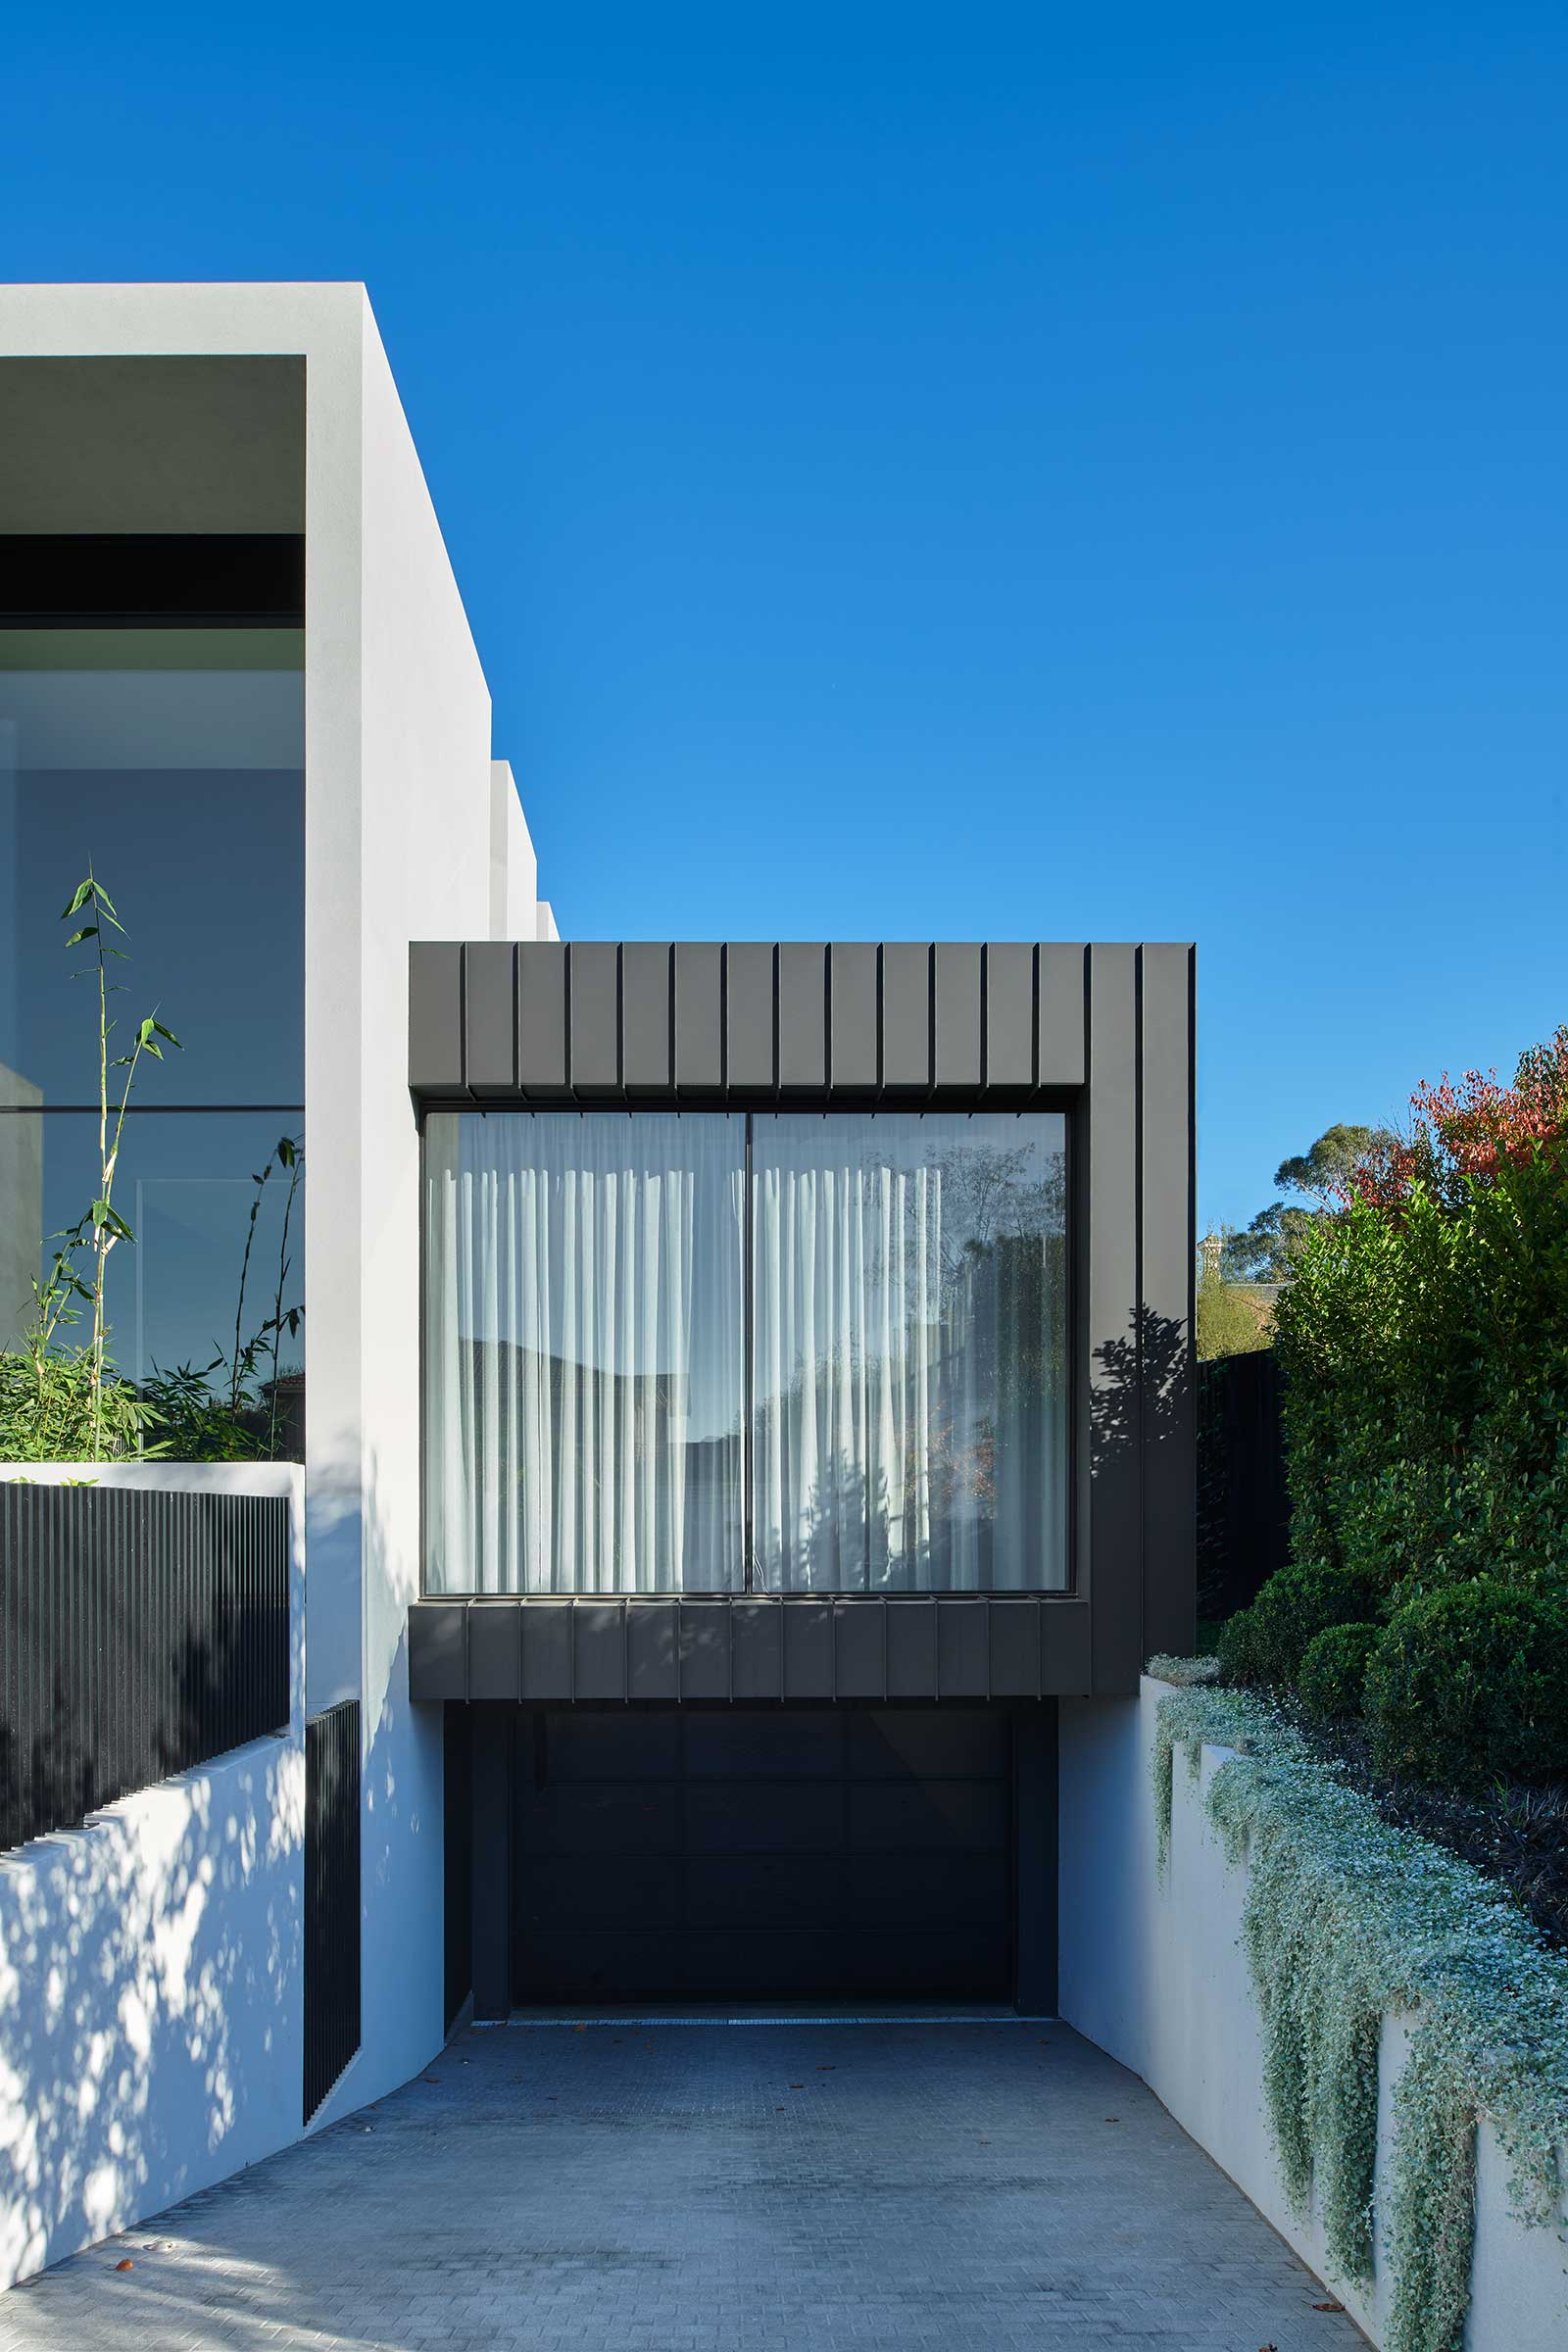 02_taouk_architects_bramley_court_veeral_5378_edit_p.jpg